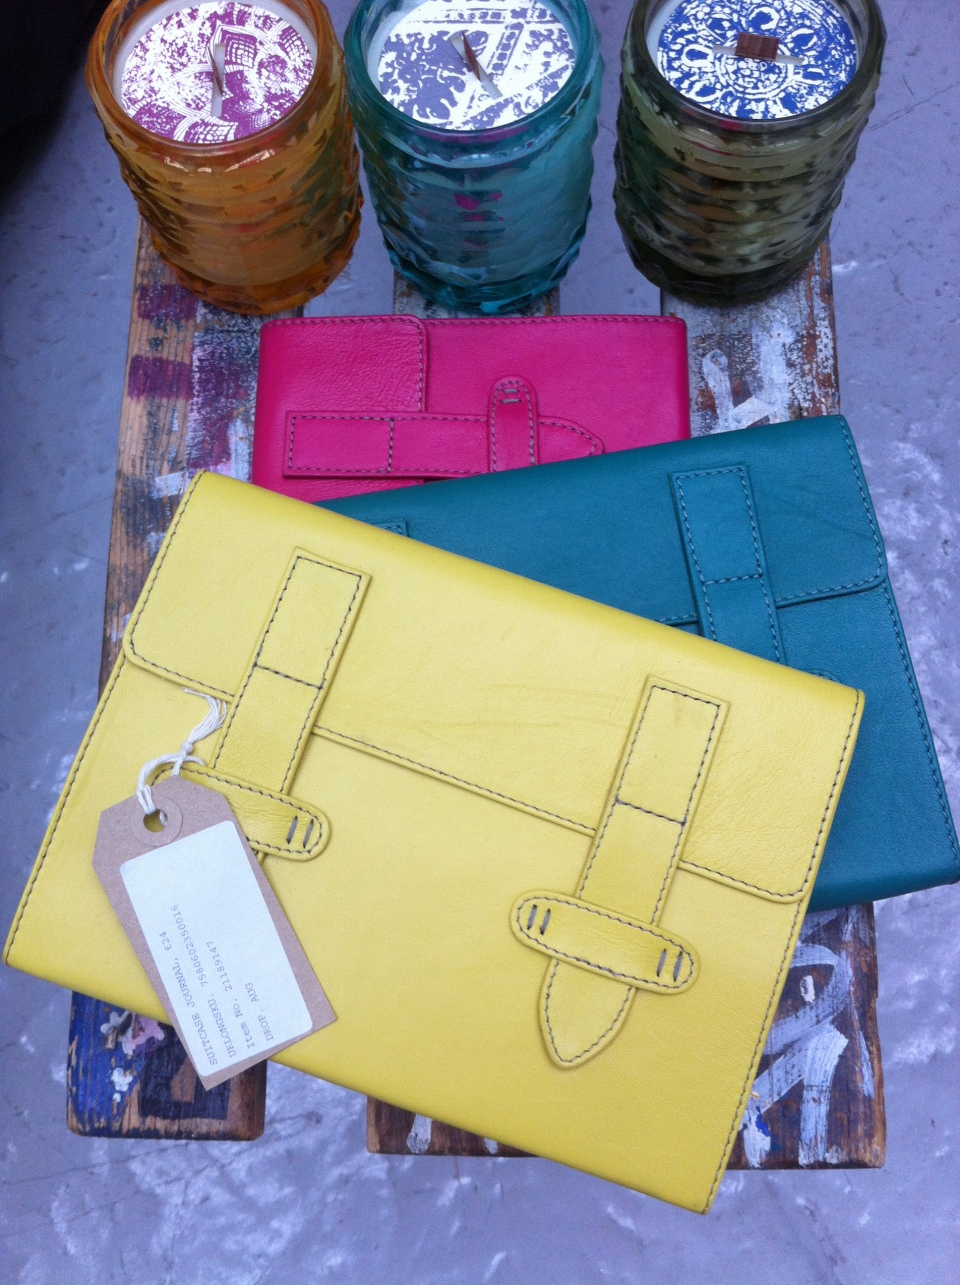 satchels, wallets, notebooks